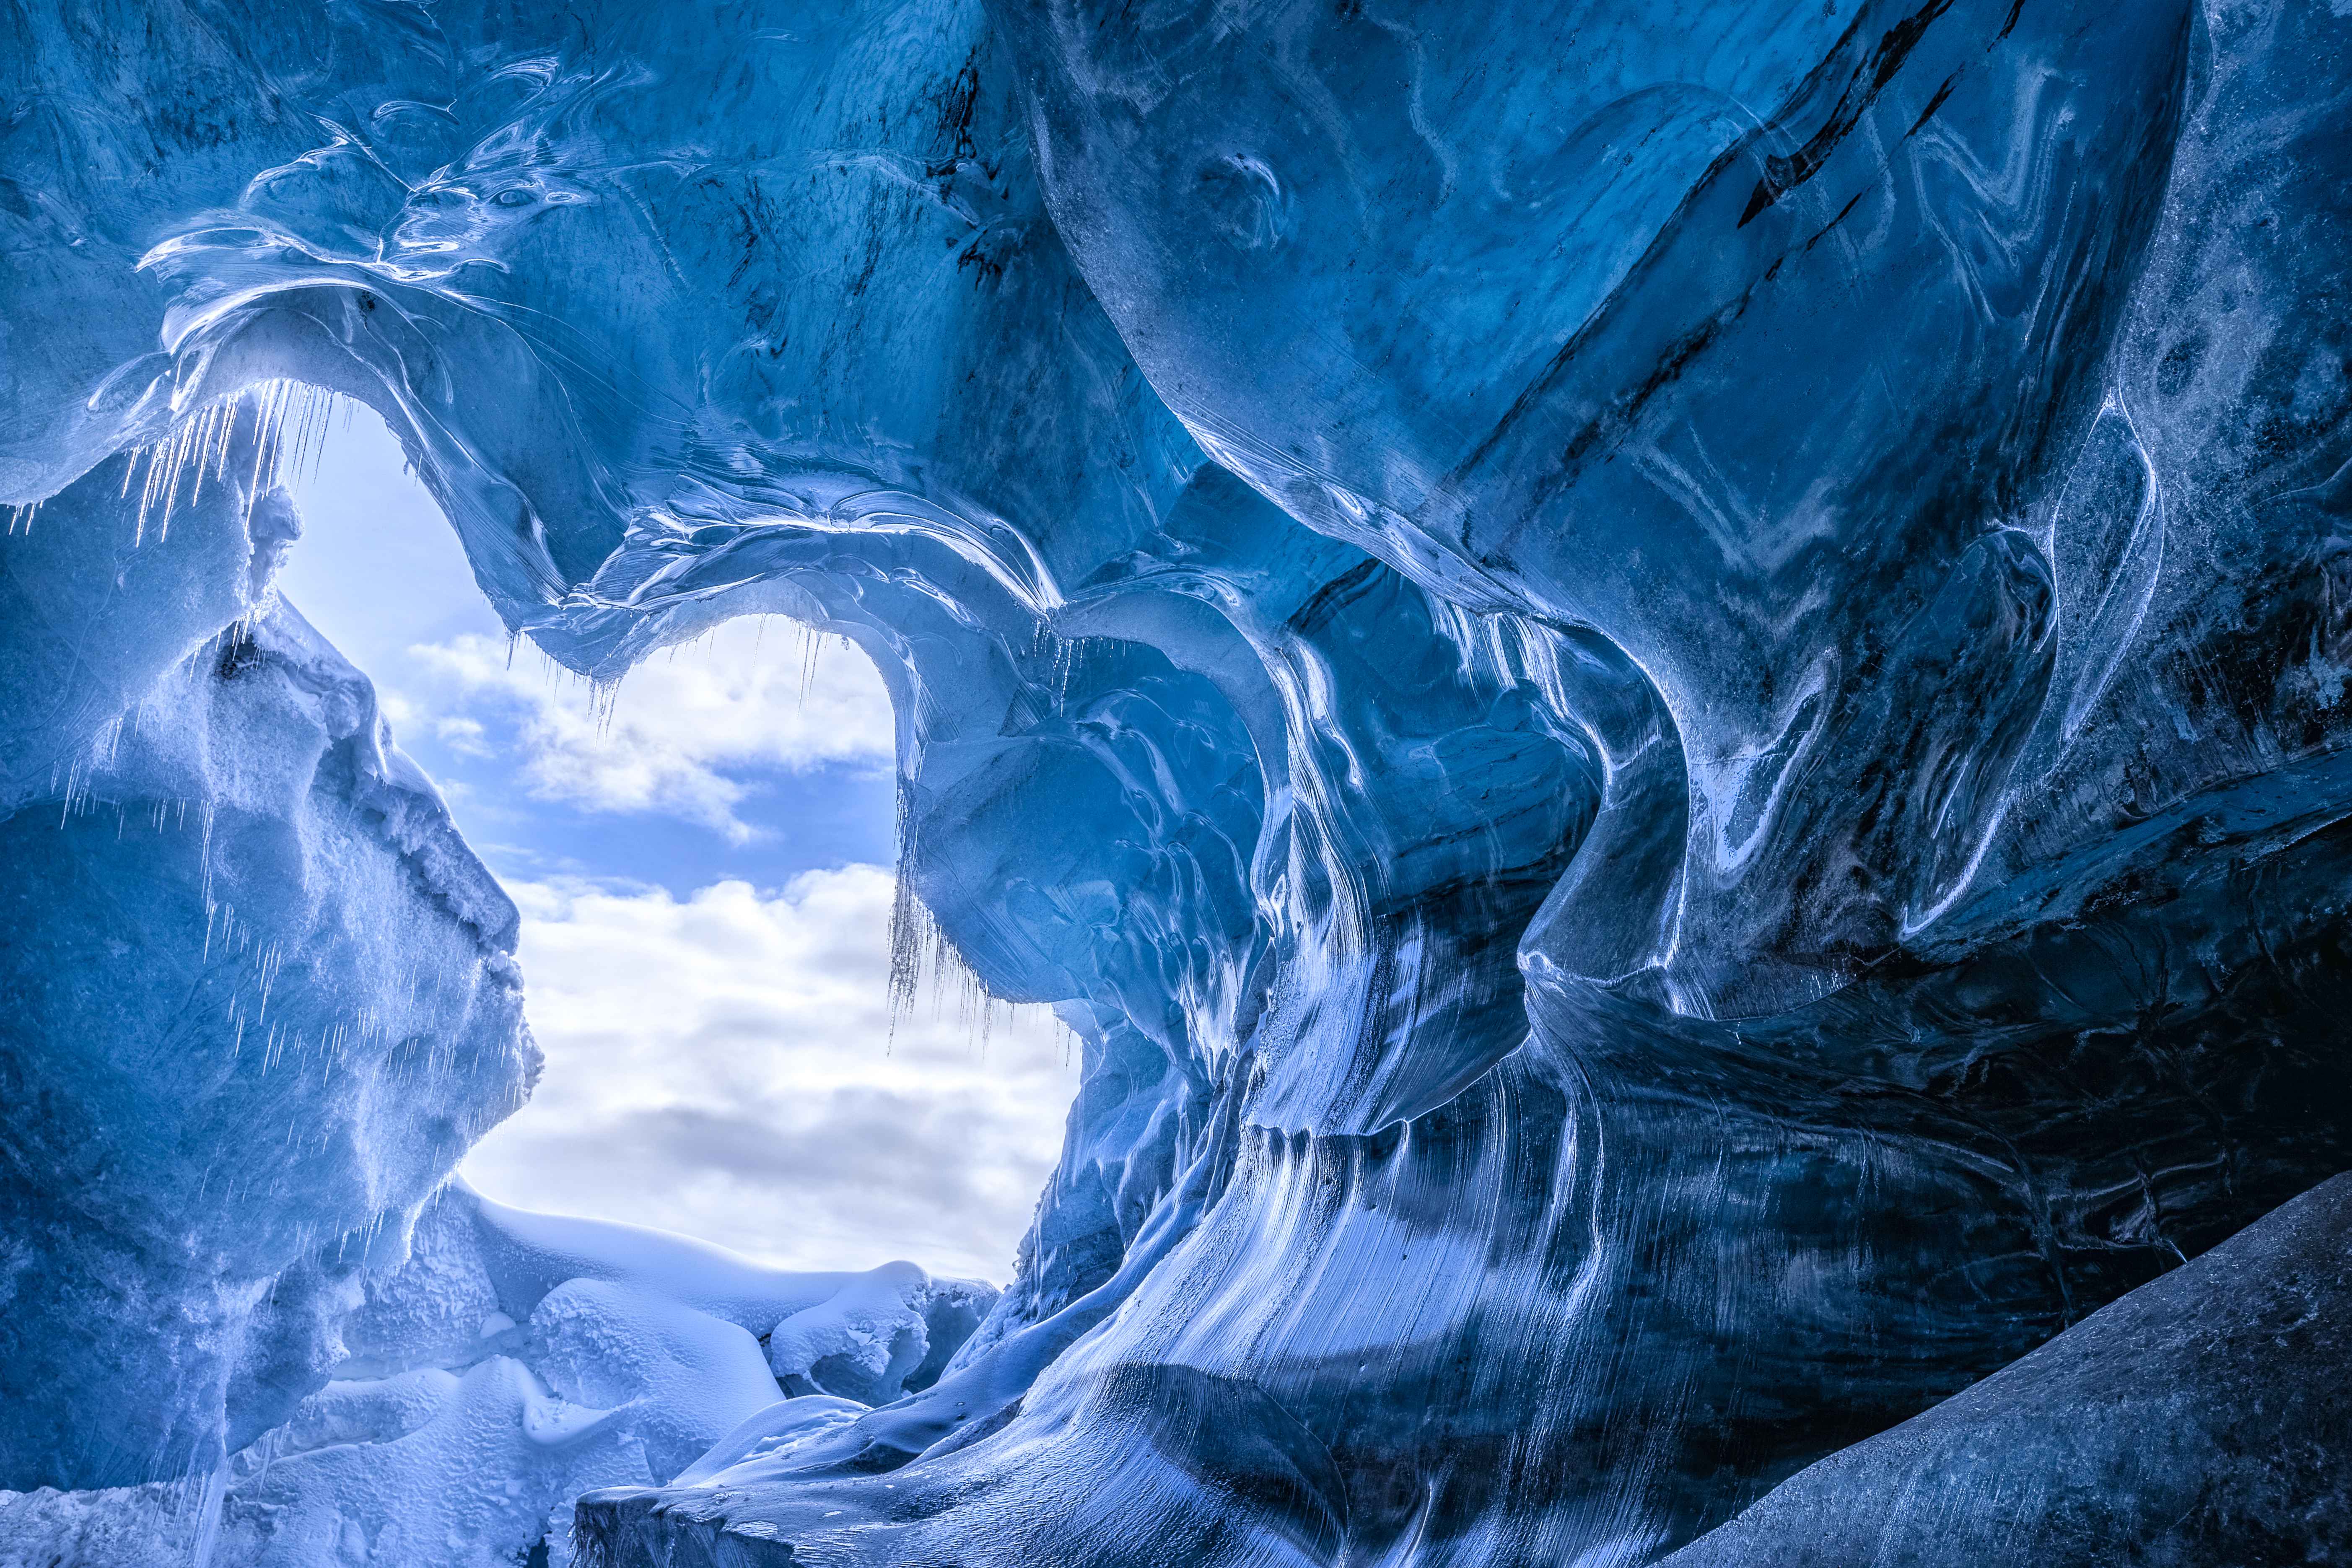 Nature Iceland Ice Cave 5611x3741